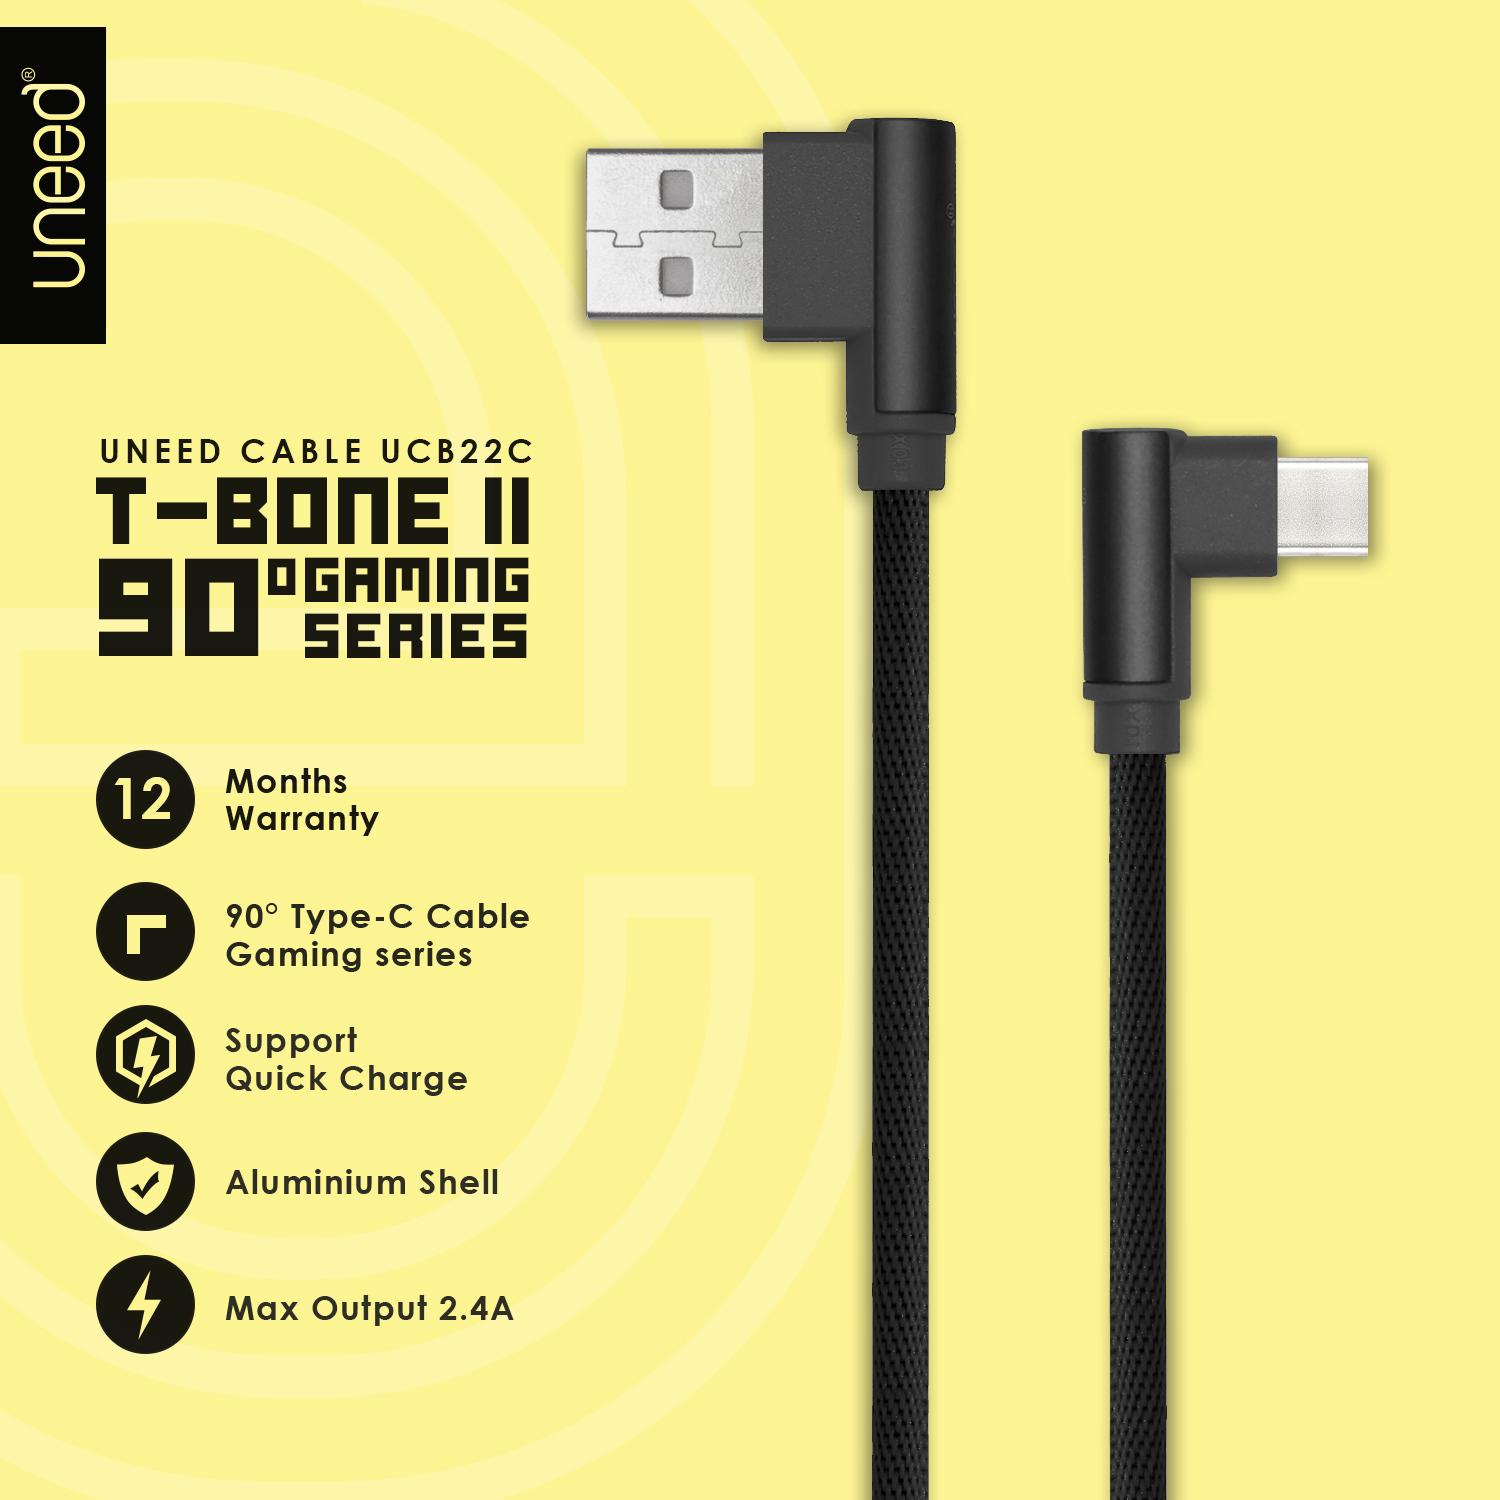 Kelebihan Uneed Gold Plated Kabel Data Type C Quick Charge 3 0 Max Charger Adaptor Delcell 3a Original T Bone Ii Charging Ucb22c